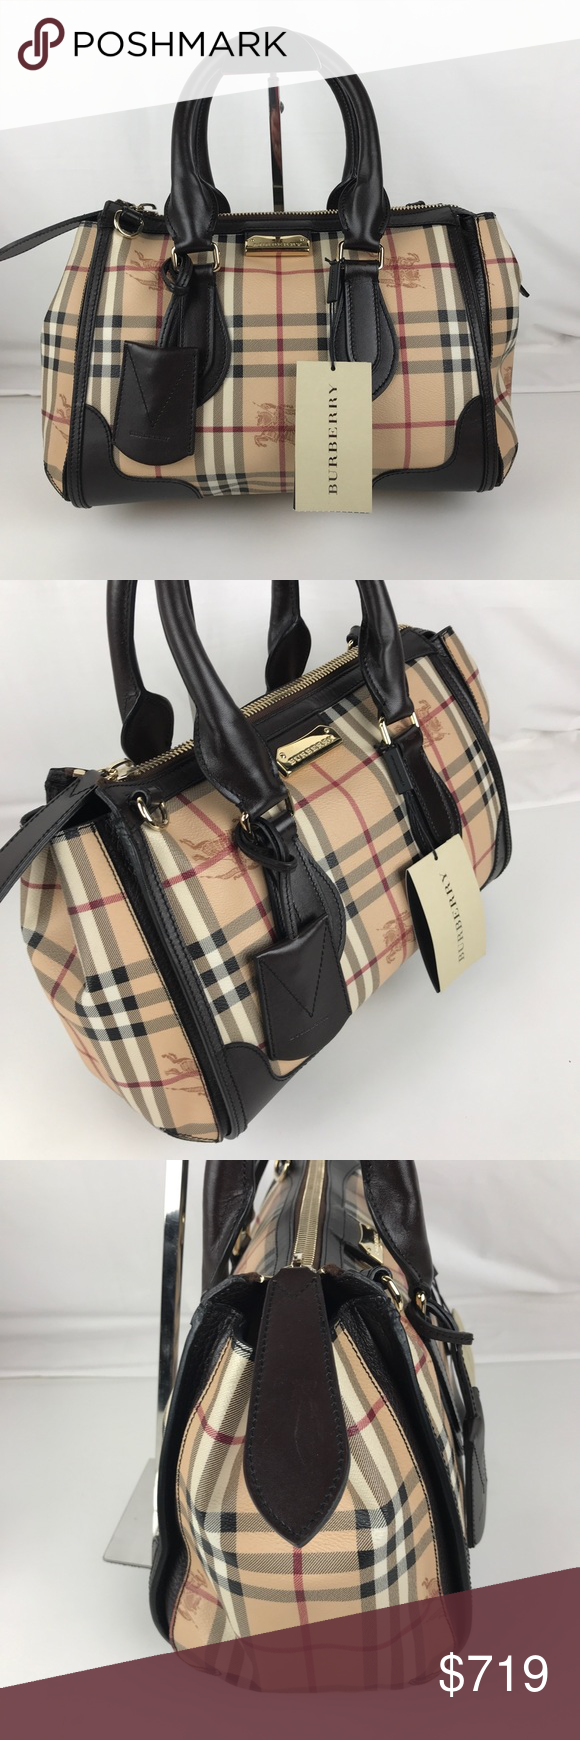 cc0a3440d13d Burberry Plaid Gladstone Chocolate Tote 3870759 Burberry Style 3870759  Authentic. Gently used with tag